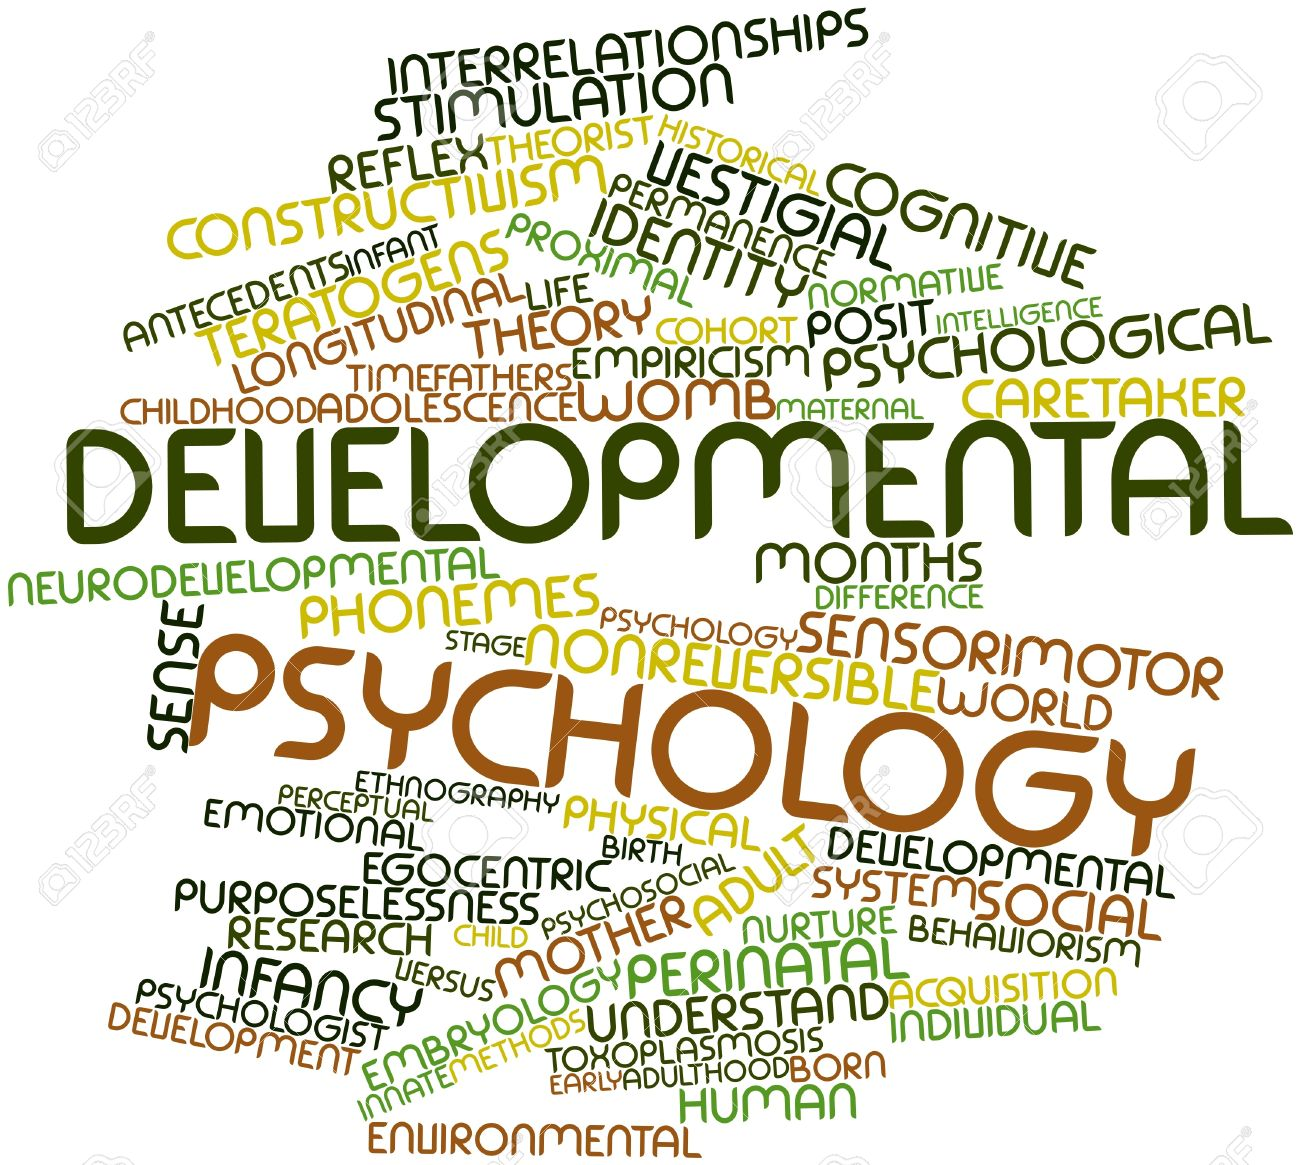 developmental psychology research paper ideas Psychology research papers custom written paper masters can write you a custom research paper on any psychology topic - human sexuality, psychological research.